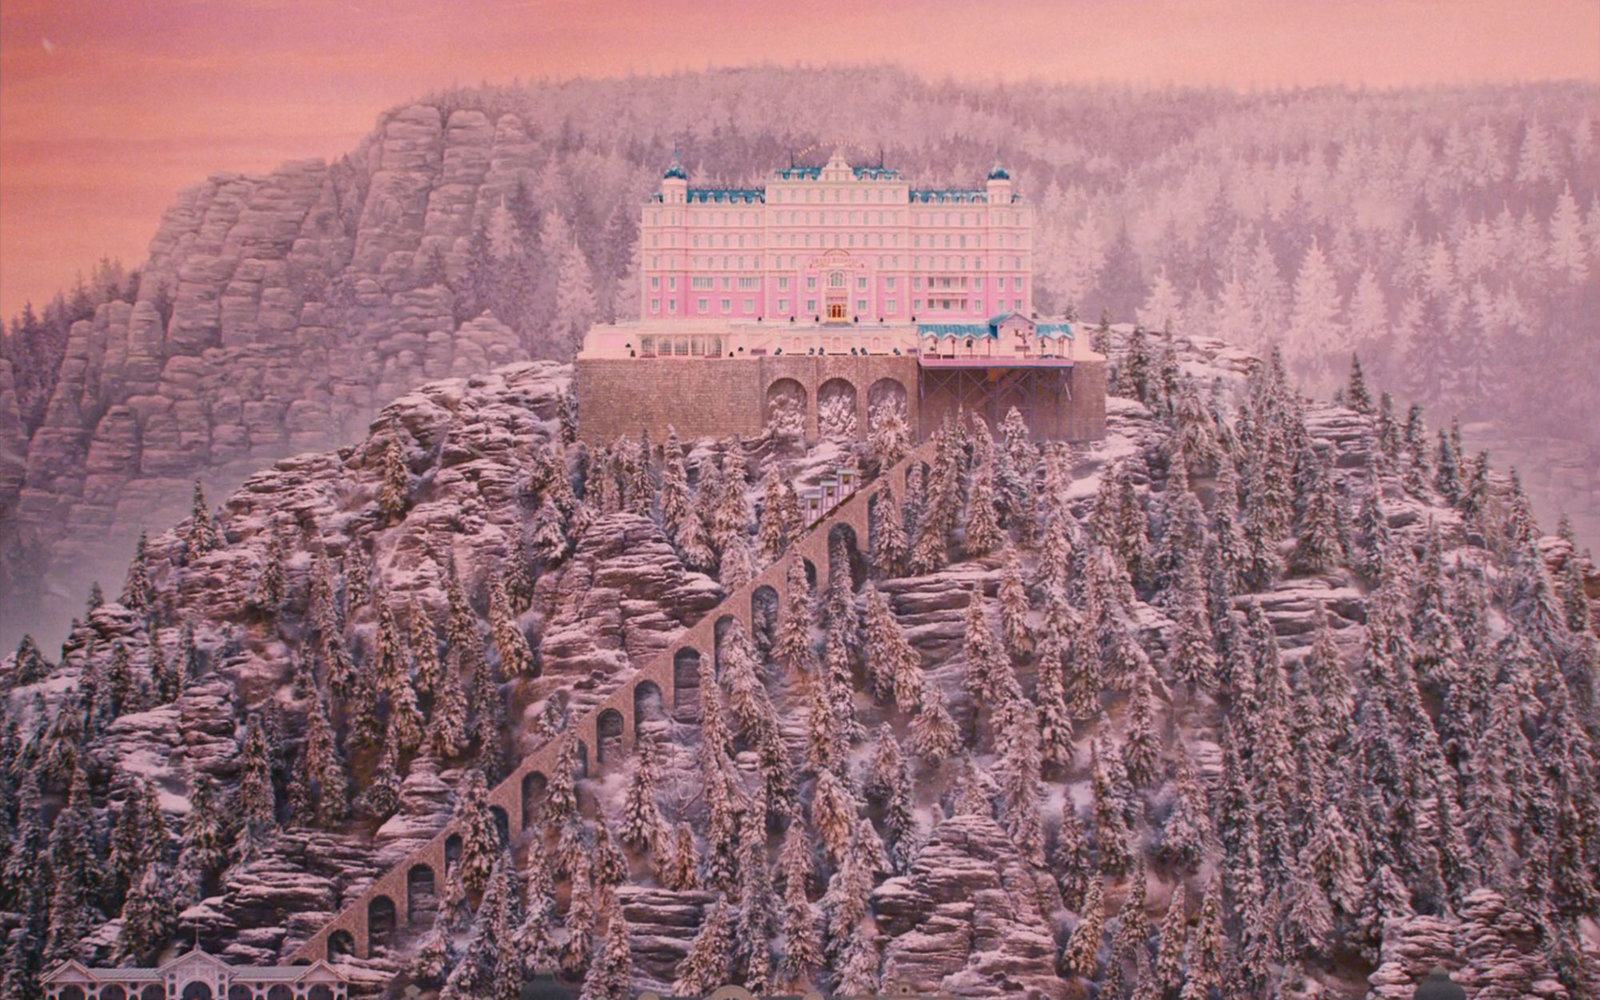 People Are Reviewing 'The Grand Budapest Hotel' on TripAdvisor